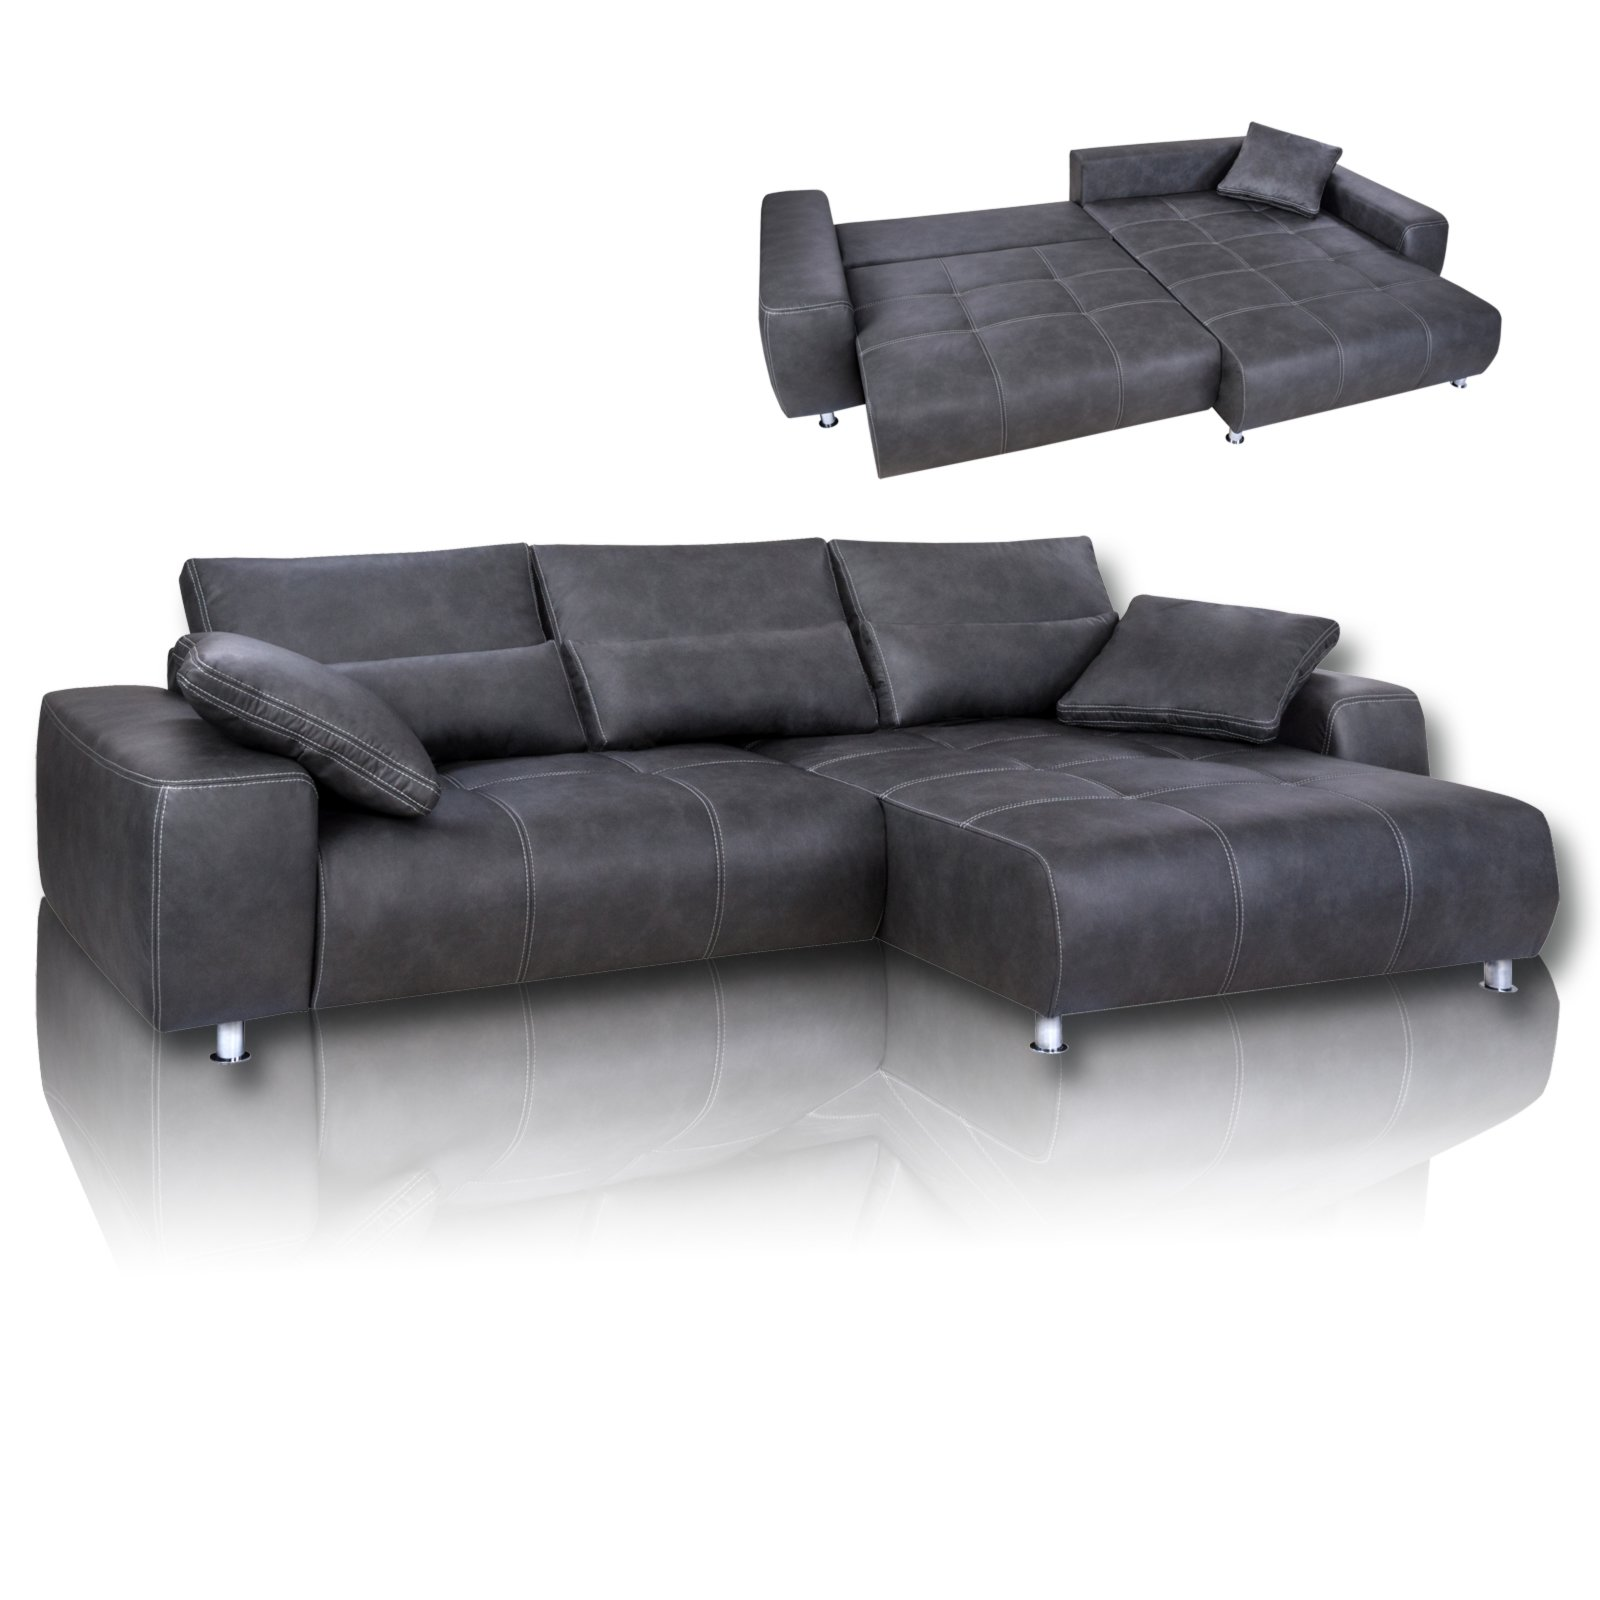 ecksofa anthrazit mit liegefunktion ecksofas l form sofas couches m bel roller. Black Bedroom Furniture Sets. Home Design Ideas